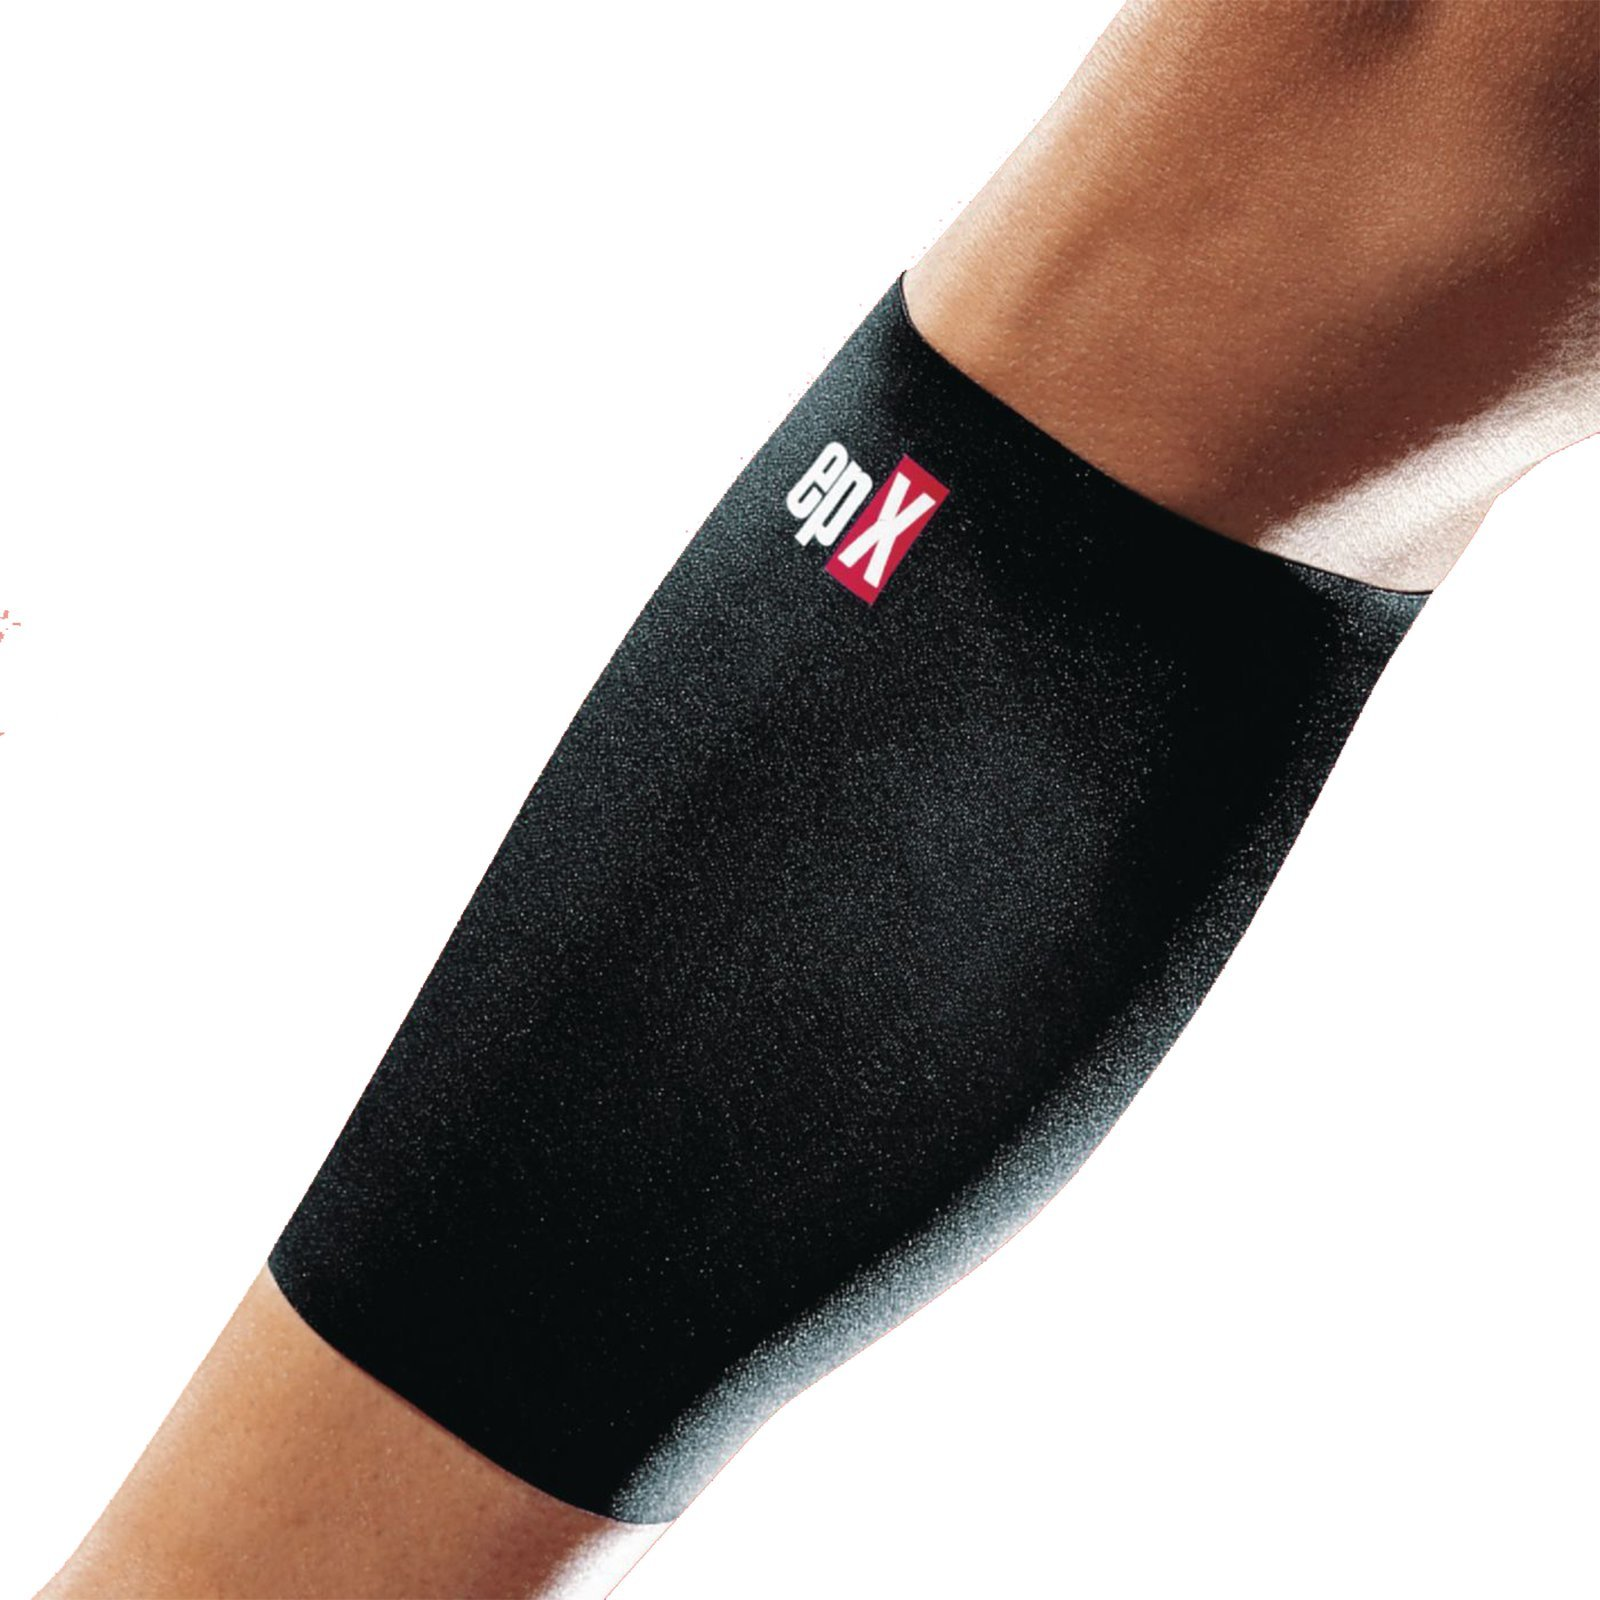 89a05121ae523b epX Contoured Calf Support, Calf Compression Sleeve for Shin Splints, Pain  Relief, and Strains, for Running, ...